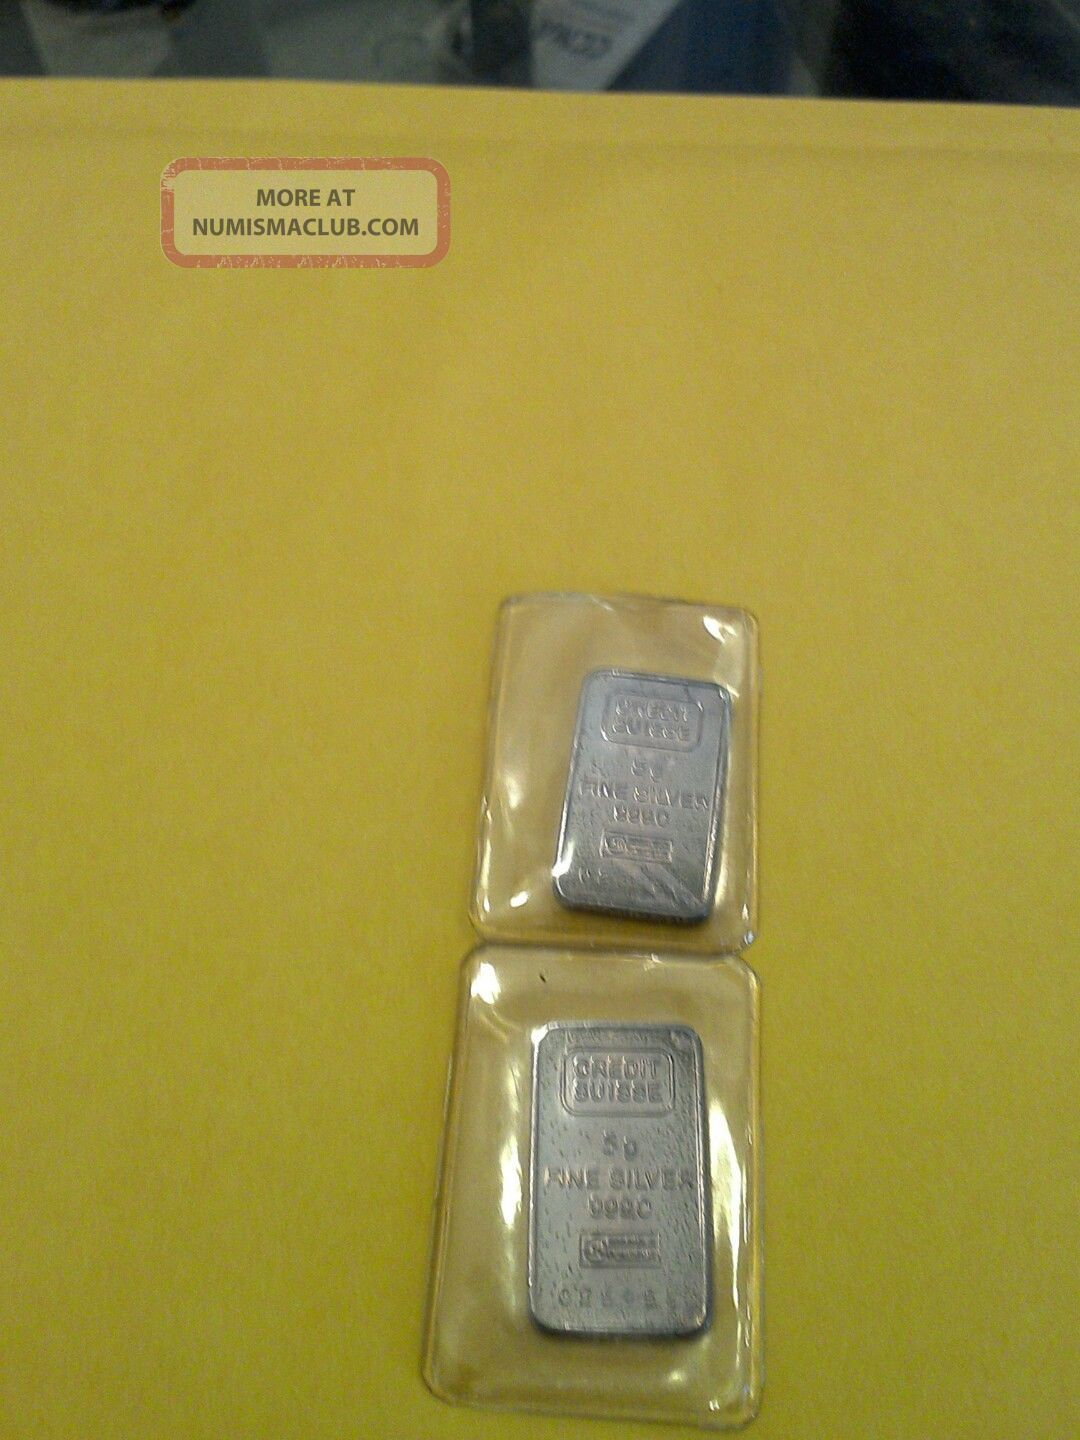 5 Gram Credit Suisse Bar Platinum photo